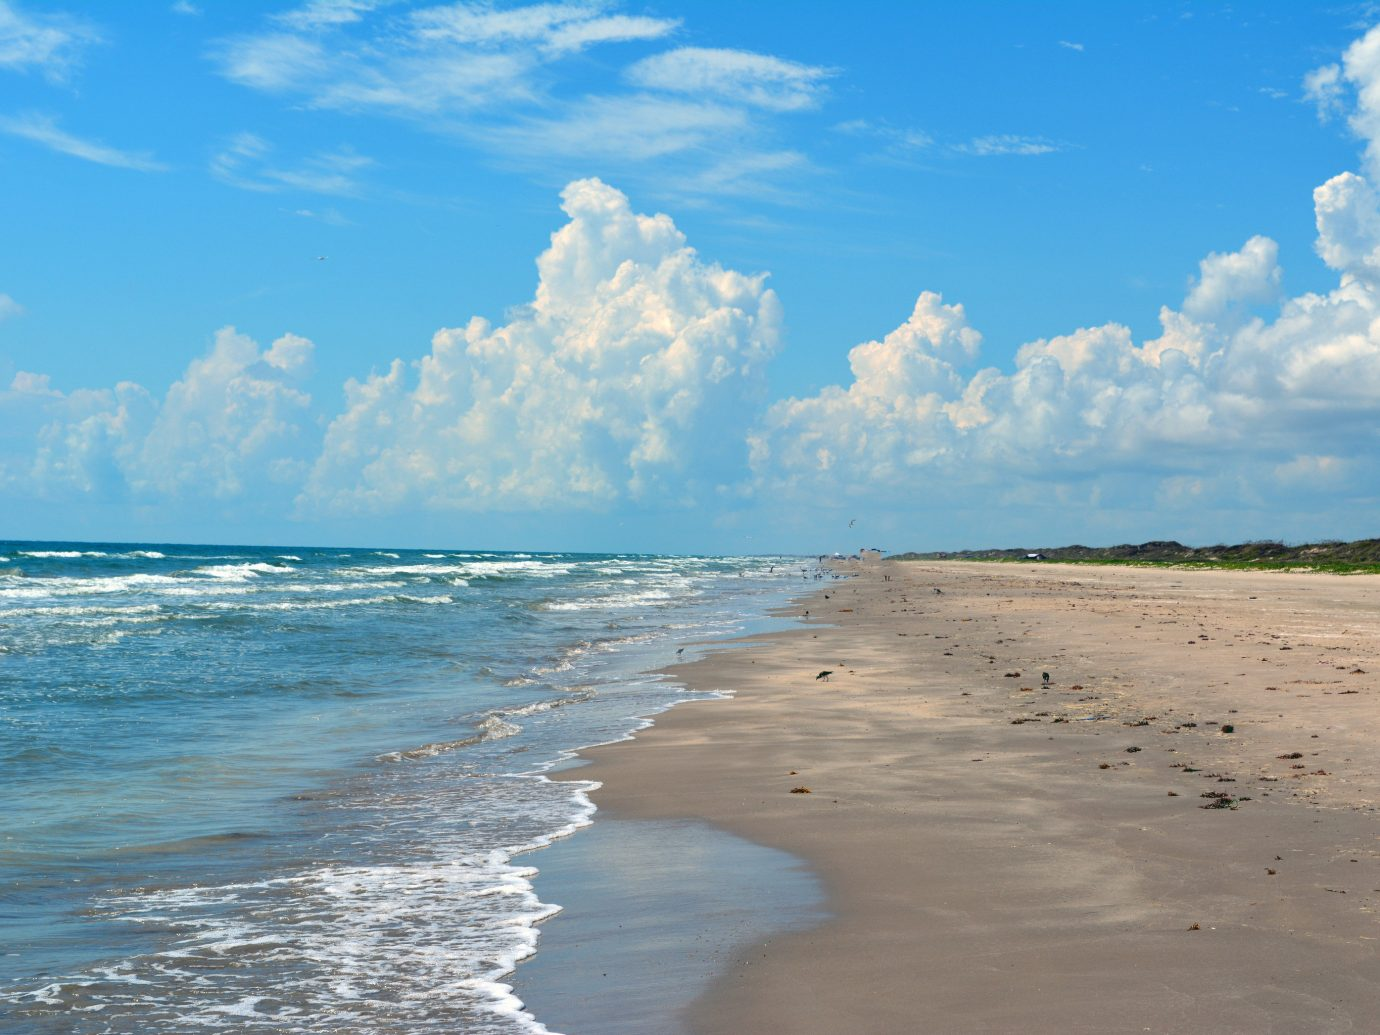 Trip Ideas outdoor sky water Beach Nature shore Sea body of water horizon Ocean Coast cloud wind wave wave vacation sand bay clouds sandy day